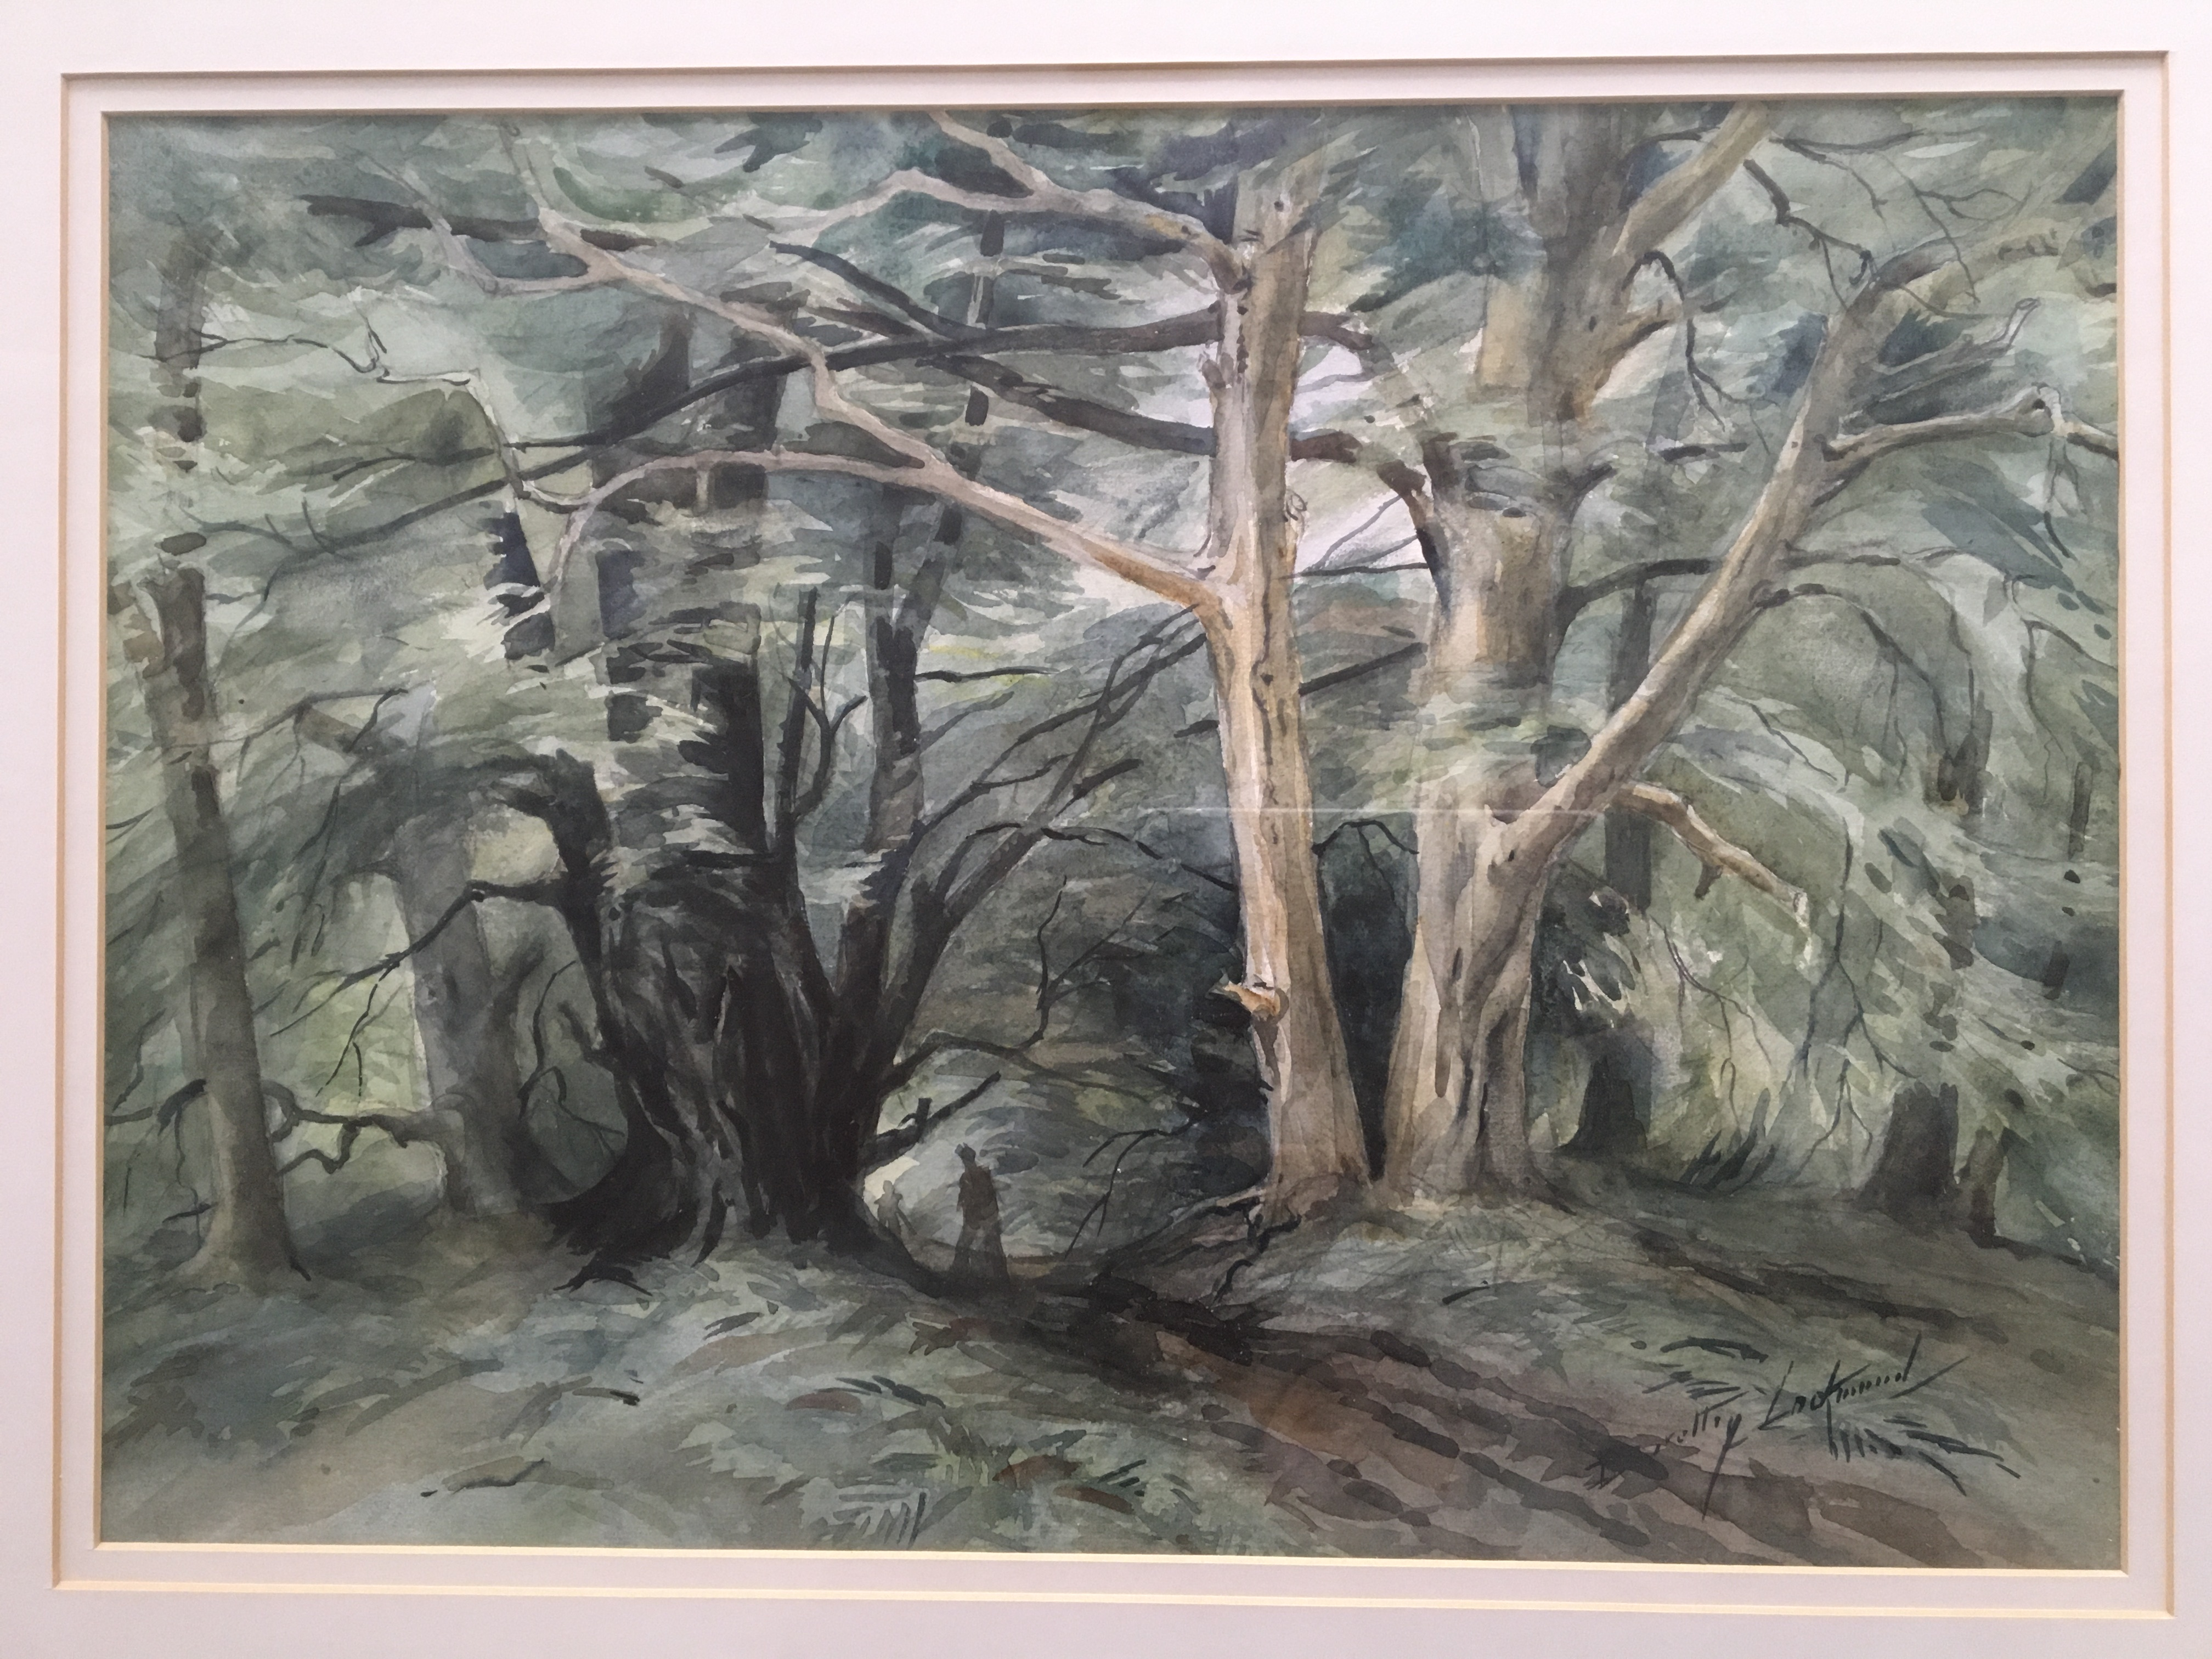 DOROTHY LOCKWOOD. Framed, signed and titled 'The New Forest', watercolour on paper, figures - Image 3 of 3